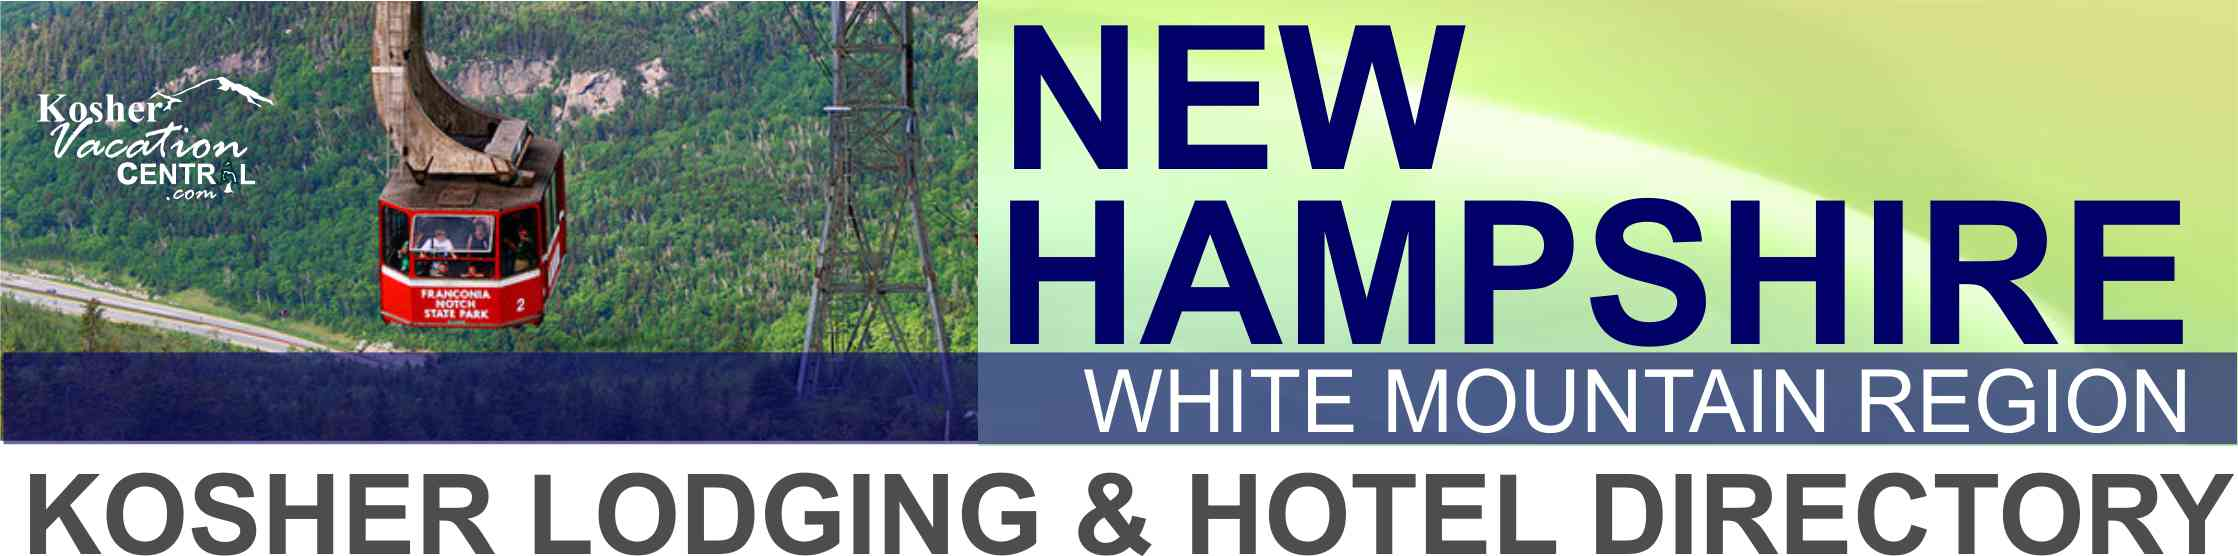 New Hampshire Got It Here S A List Of Kosher Hotels Restaurants Shuls More In The White Mountains Area Kosher Vacation Central